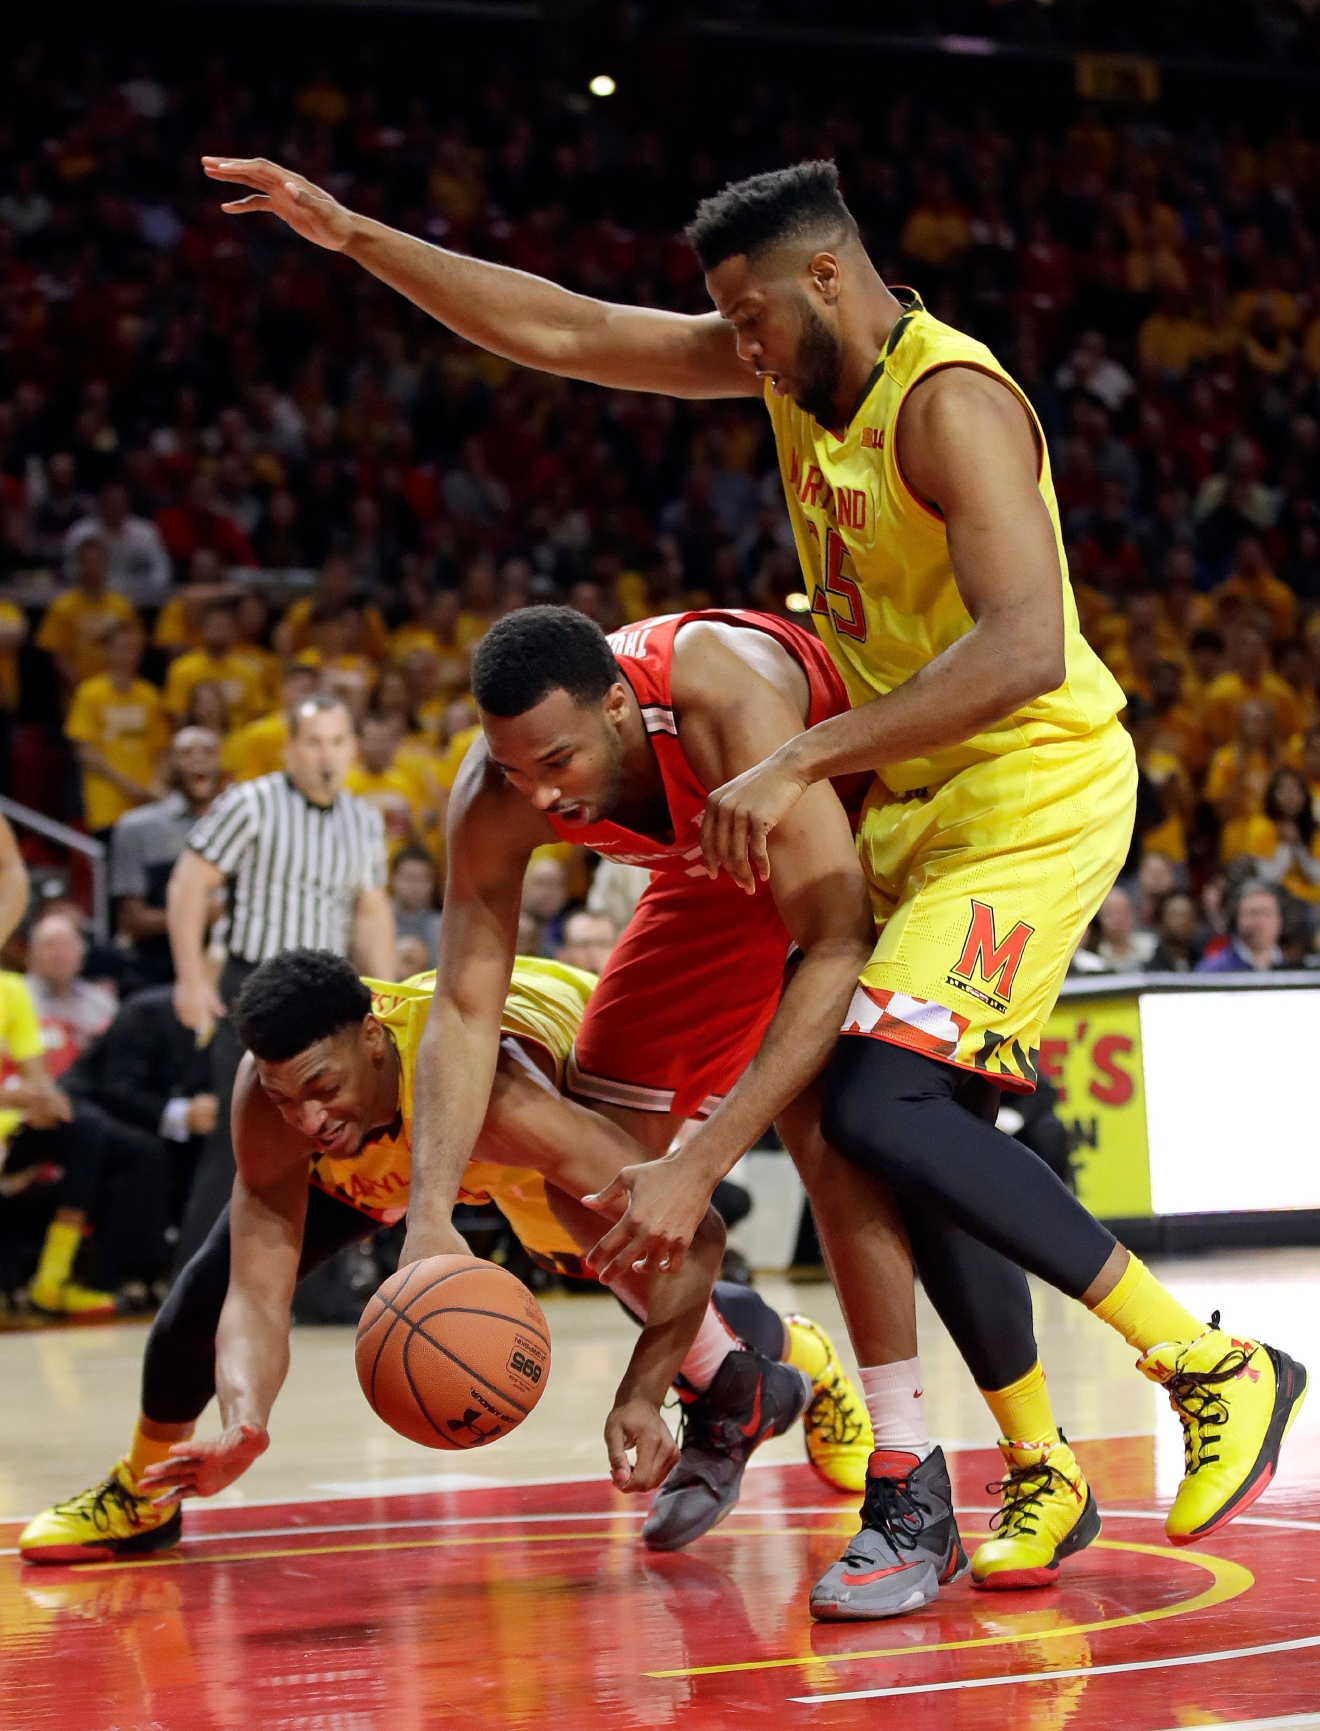 Ohio State center Trevor Thompson, center, becomes entangled with Maryland forwards Justin Jackson, left, of Canada, and Damonte Dodd as he tries to maintain possession of the ball in the first half of an NCAA college basketball game, Saturday, Feb. 11, 2017, in College Park, Md. (AP Photo/Patrick Semansky)